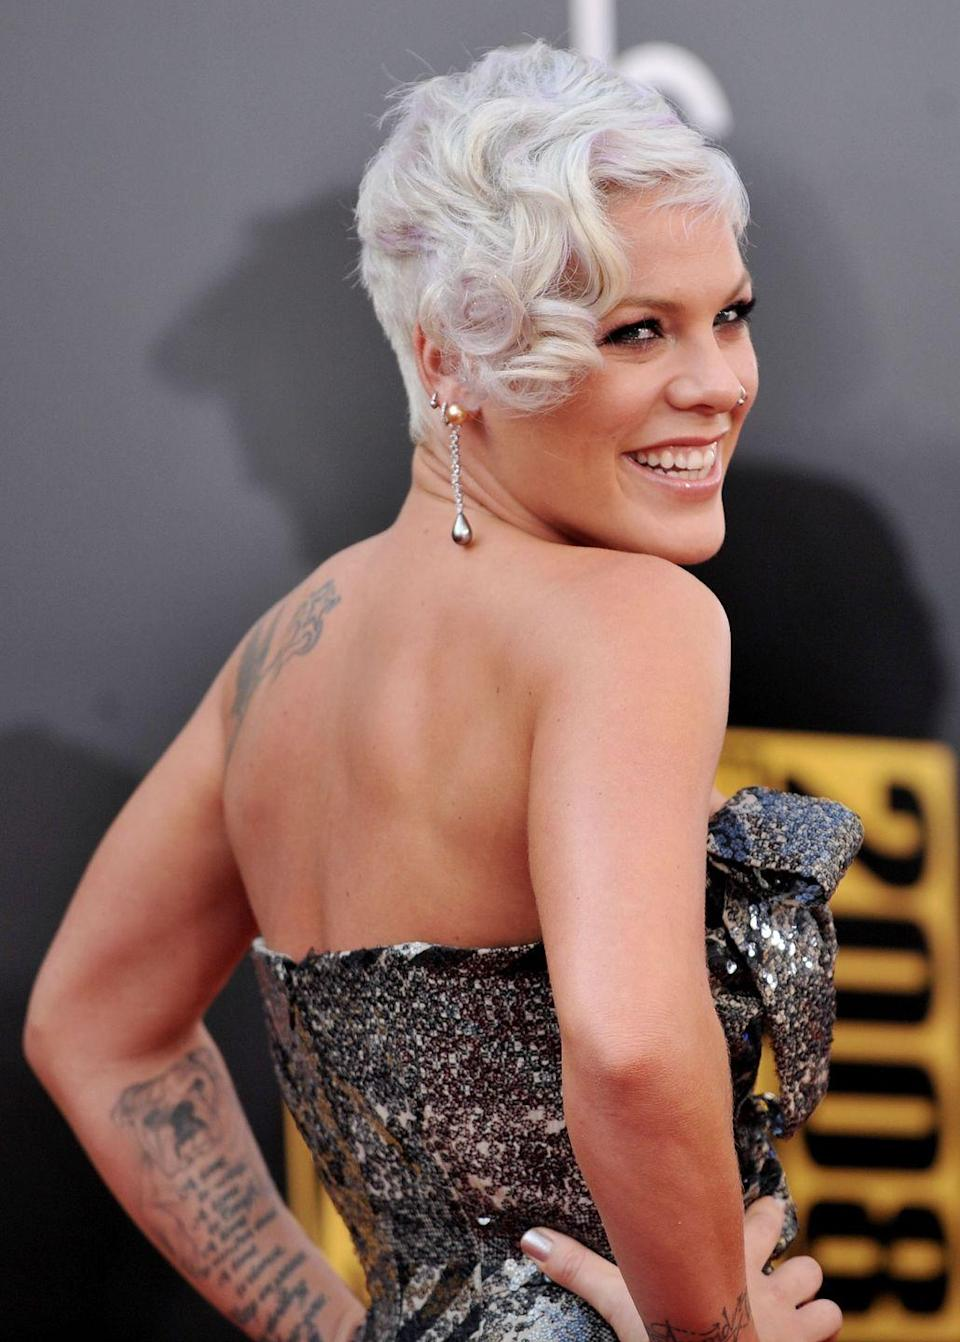 """<p>With lyrics like """"I guess I just lost my husband/I don't know where he went,"""" it's not so surprising to find out that this song is about <a href=""""https://www.goodhousekeeping.com/health/a32143522/pink-husband-carey-hart-son-jameson-coronavirus-symptoms/"""" rel=""""nofollow noopener"""" target=""""_blank"""" data-ylk=""""slk:Pink's husband, Carey Hart"""" class=""""link rapid-noclick-resp"""">Pink's husband, Carey Hart</a>. They were estranged at the time, but he appeared in the music video for the song. Pink said in <a href=""""https://www.mirror.co.uk/3am/celebrity-news/pink-reveals-she-tricked-ex-husband-338599"""" rel=""""nofollow noopener"""" target=""""_blank"""" data-ylk=""""slk:an interview with Radio 1"""" class=""""link rapid-noclick-resp"""">an interview with Radio 1</a> that she convinced him to star in the video, but he didn't know what the song was about until he got to the set. </p>"""